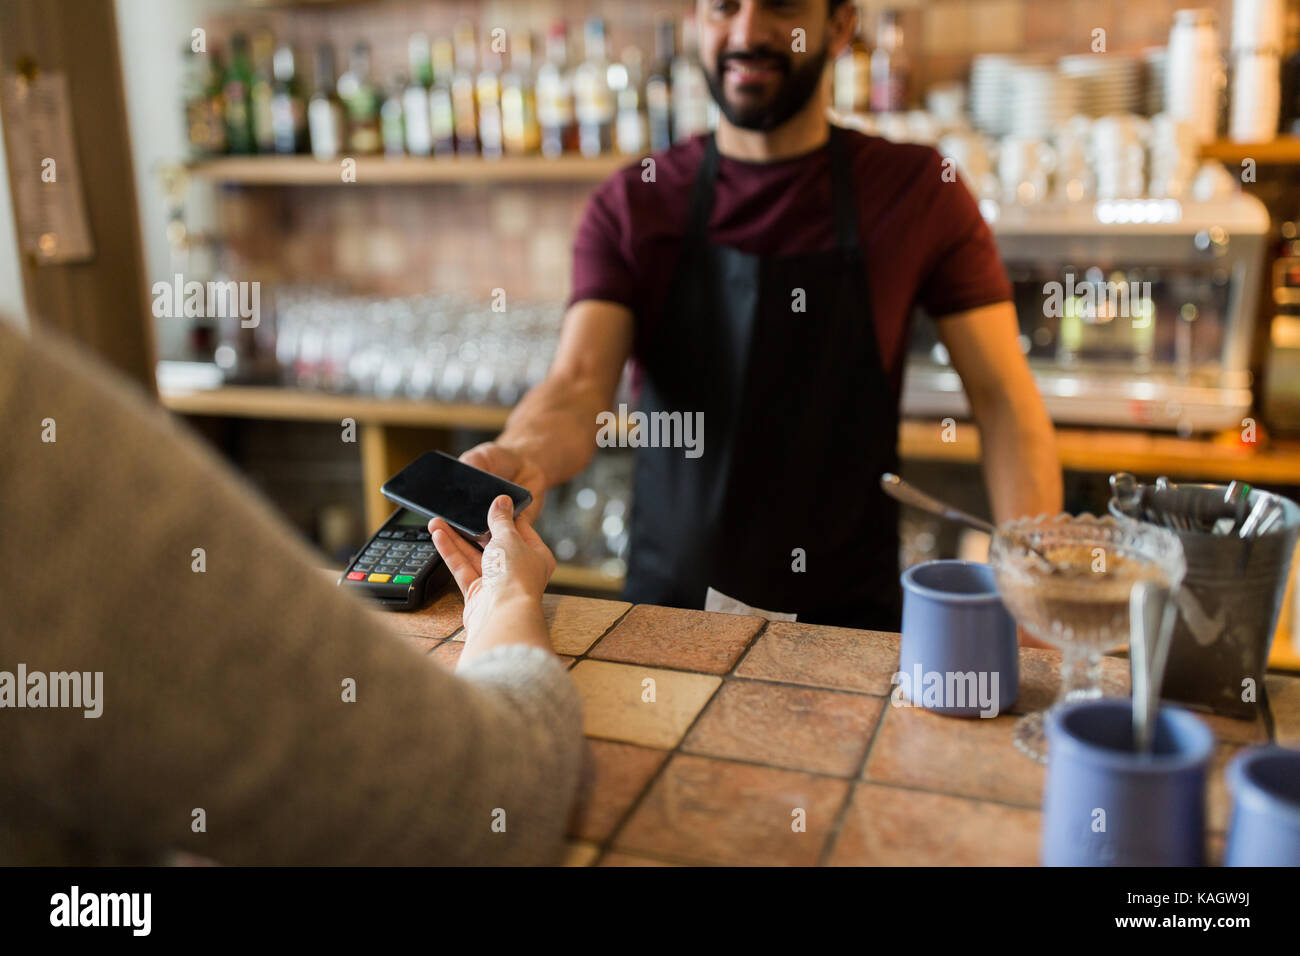 man with payment terminal and hand with smartphone - Stock Image